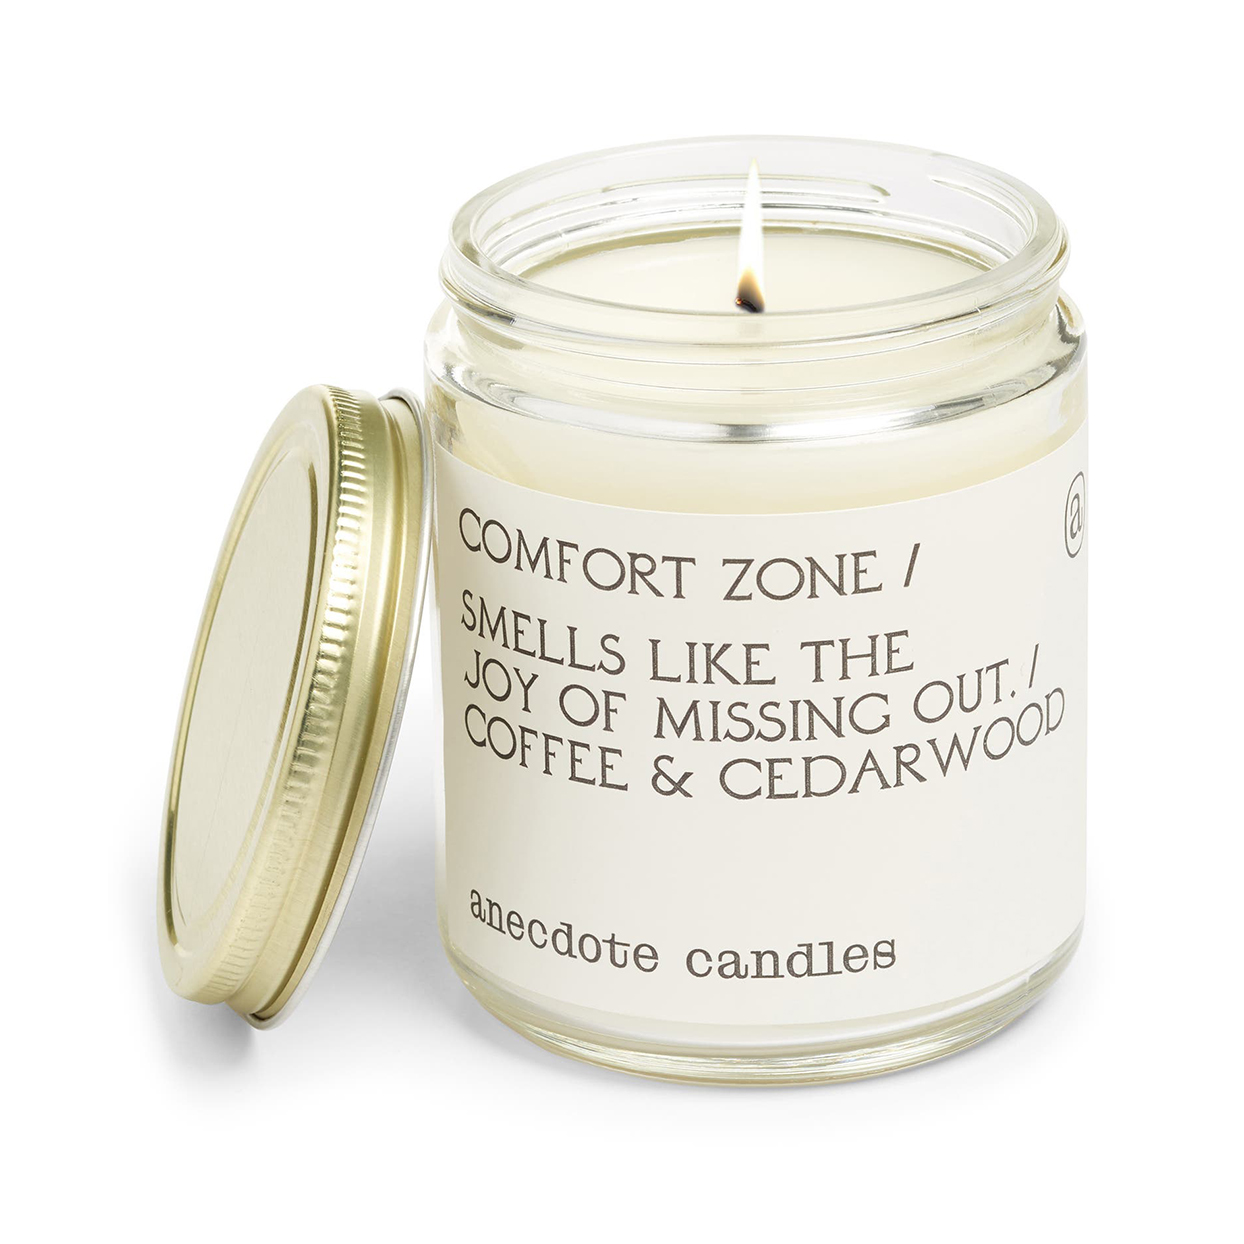 Anecdote Candles' Comfort Zone Candle